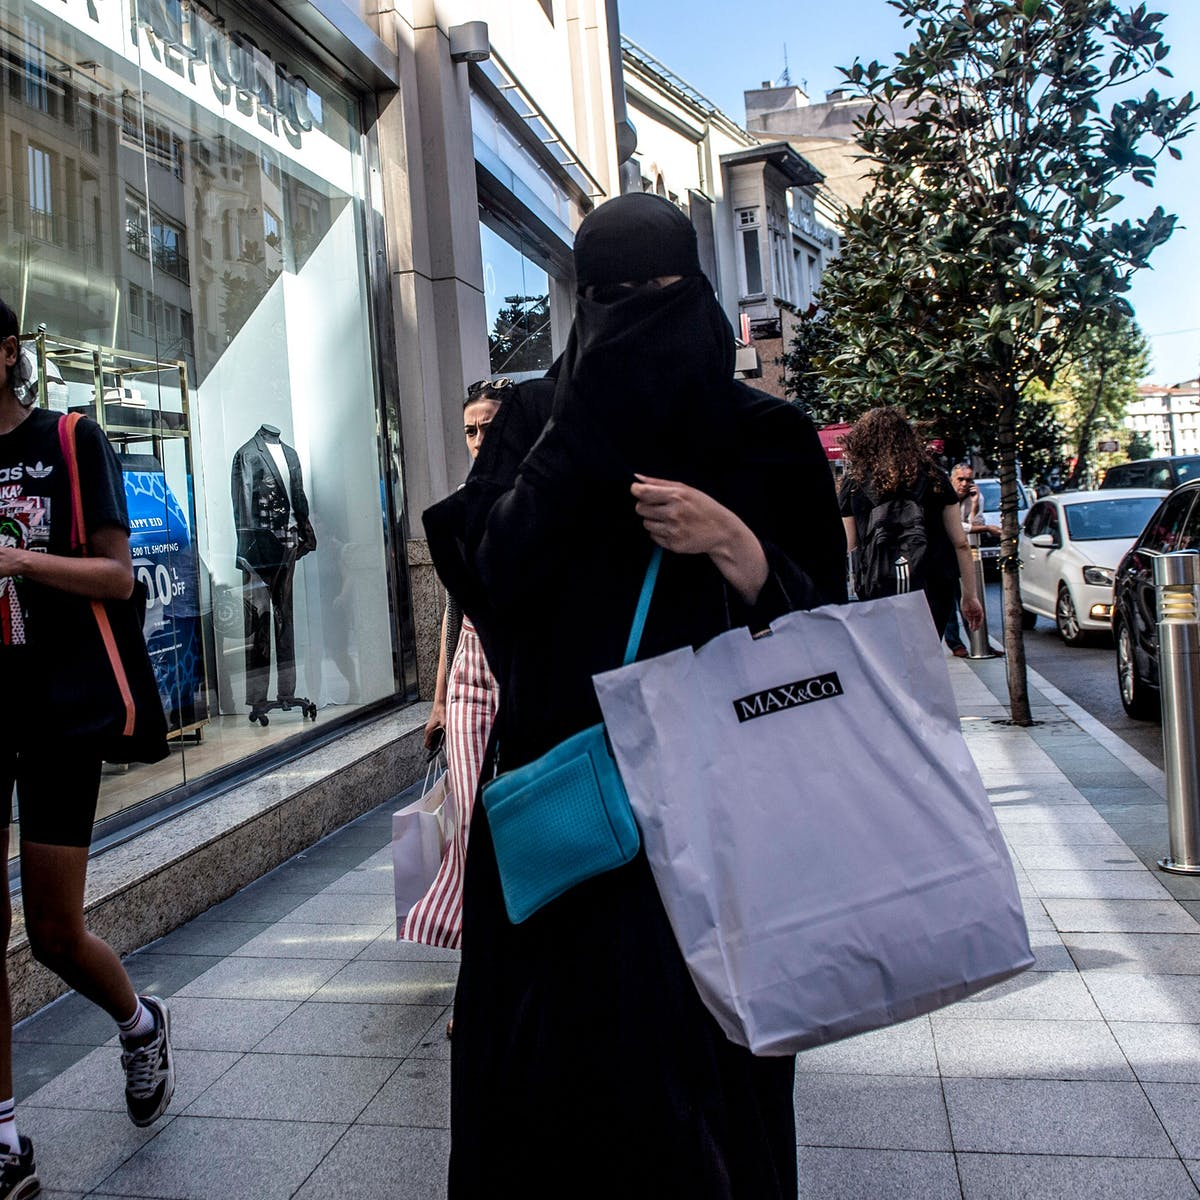 Muslim Women Who Cover Their Faces Find Greater Acceptance Among